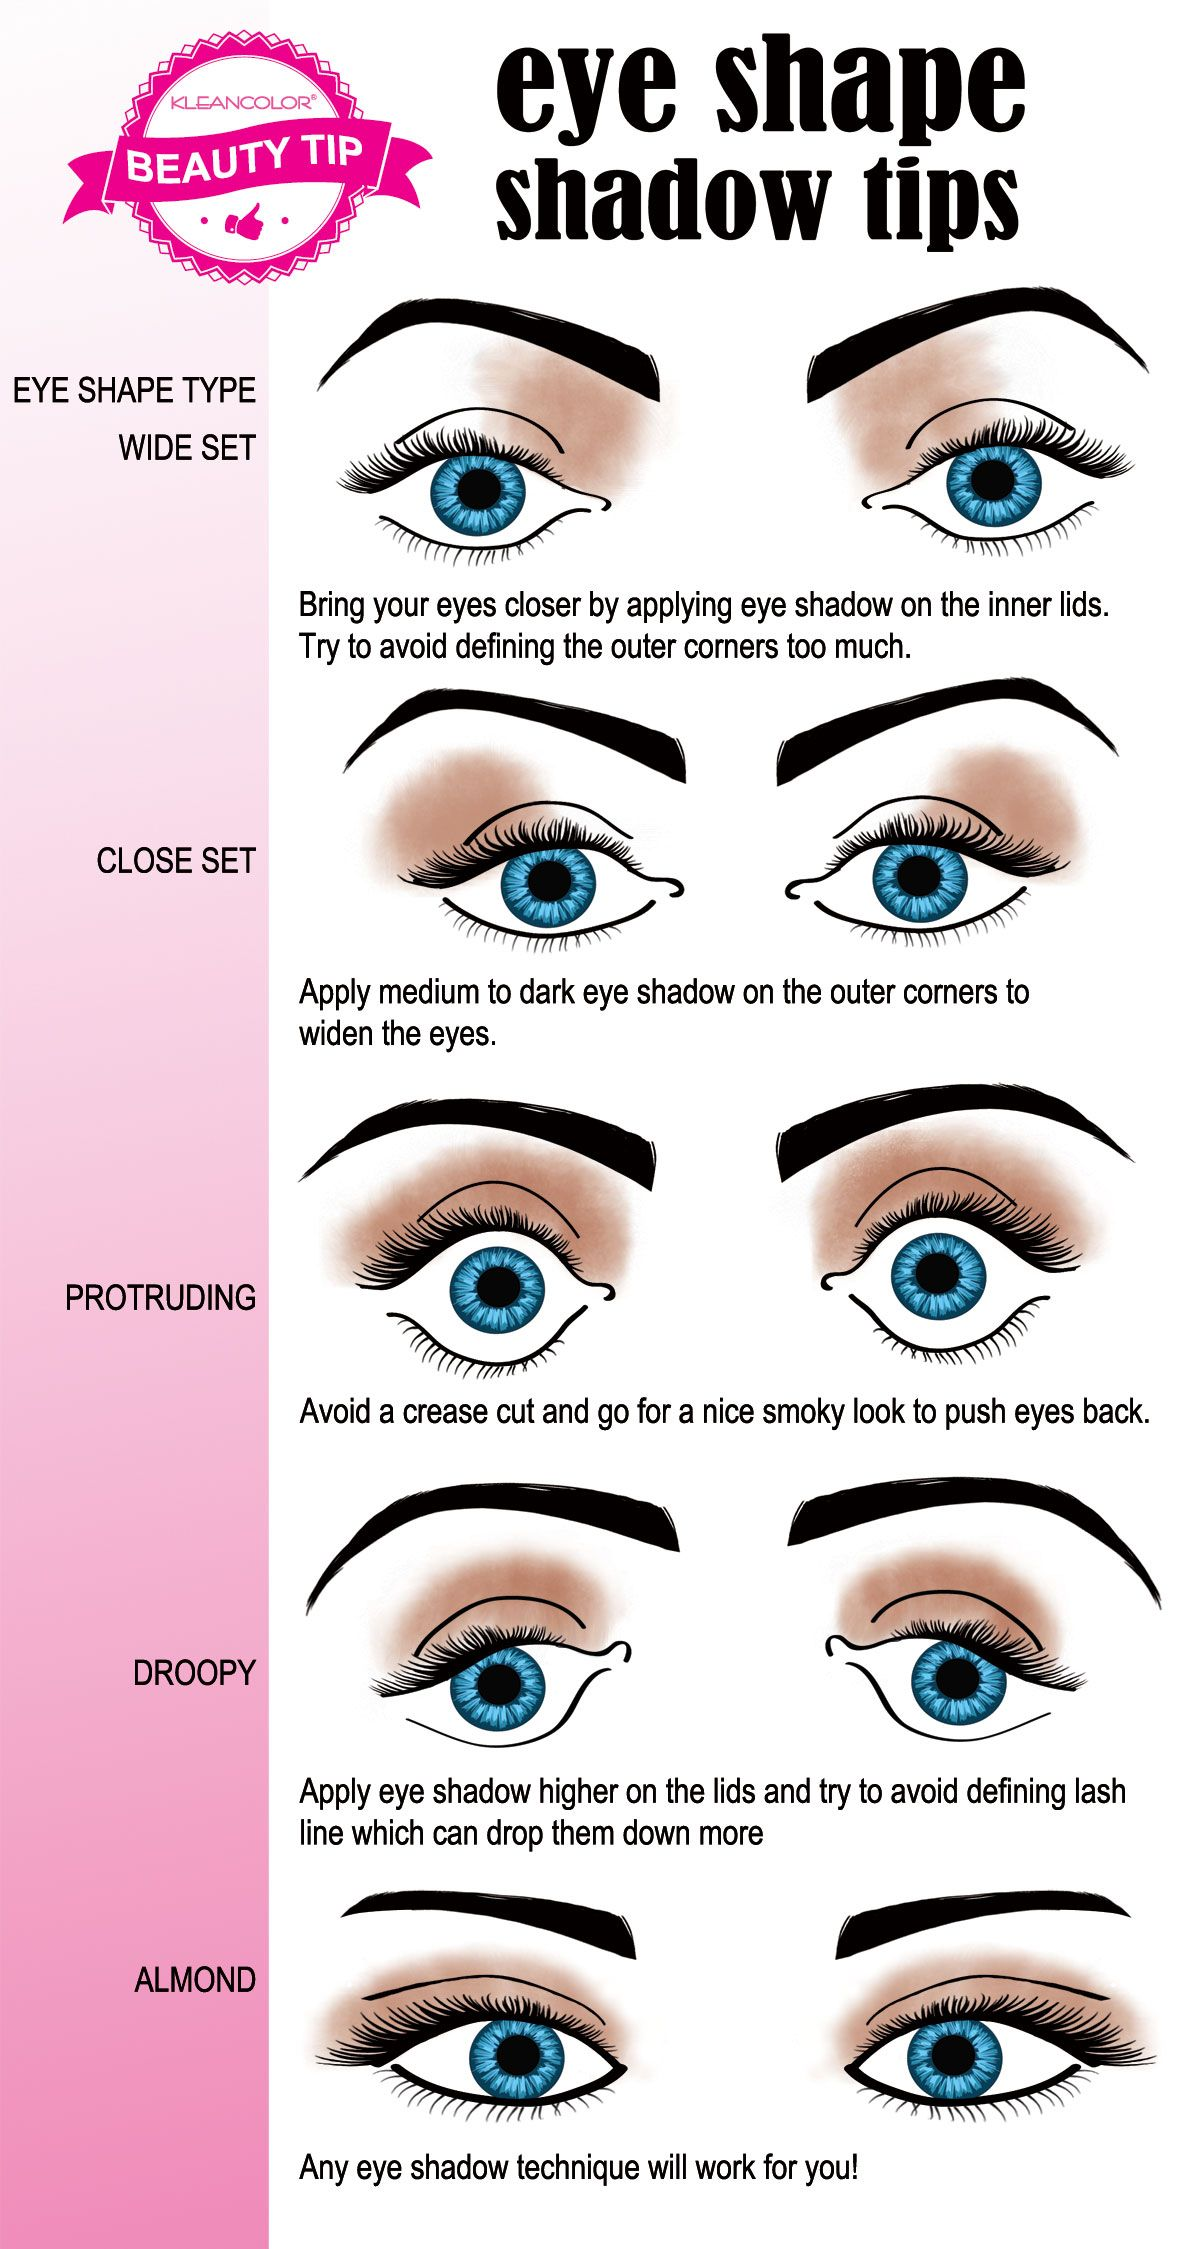 hair color placement diagram oil rig this helpful beauty tip shows how to enhance your eye